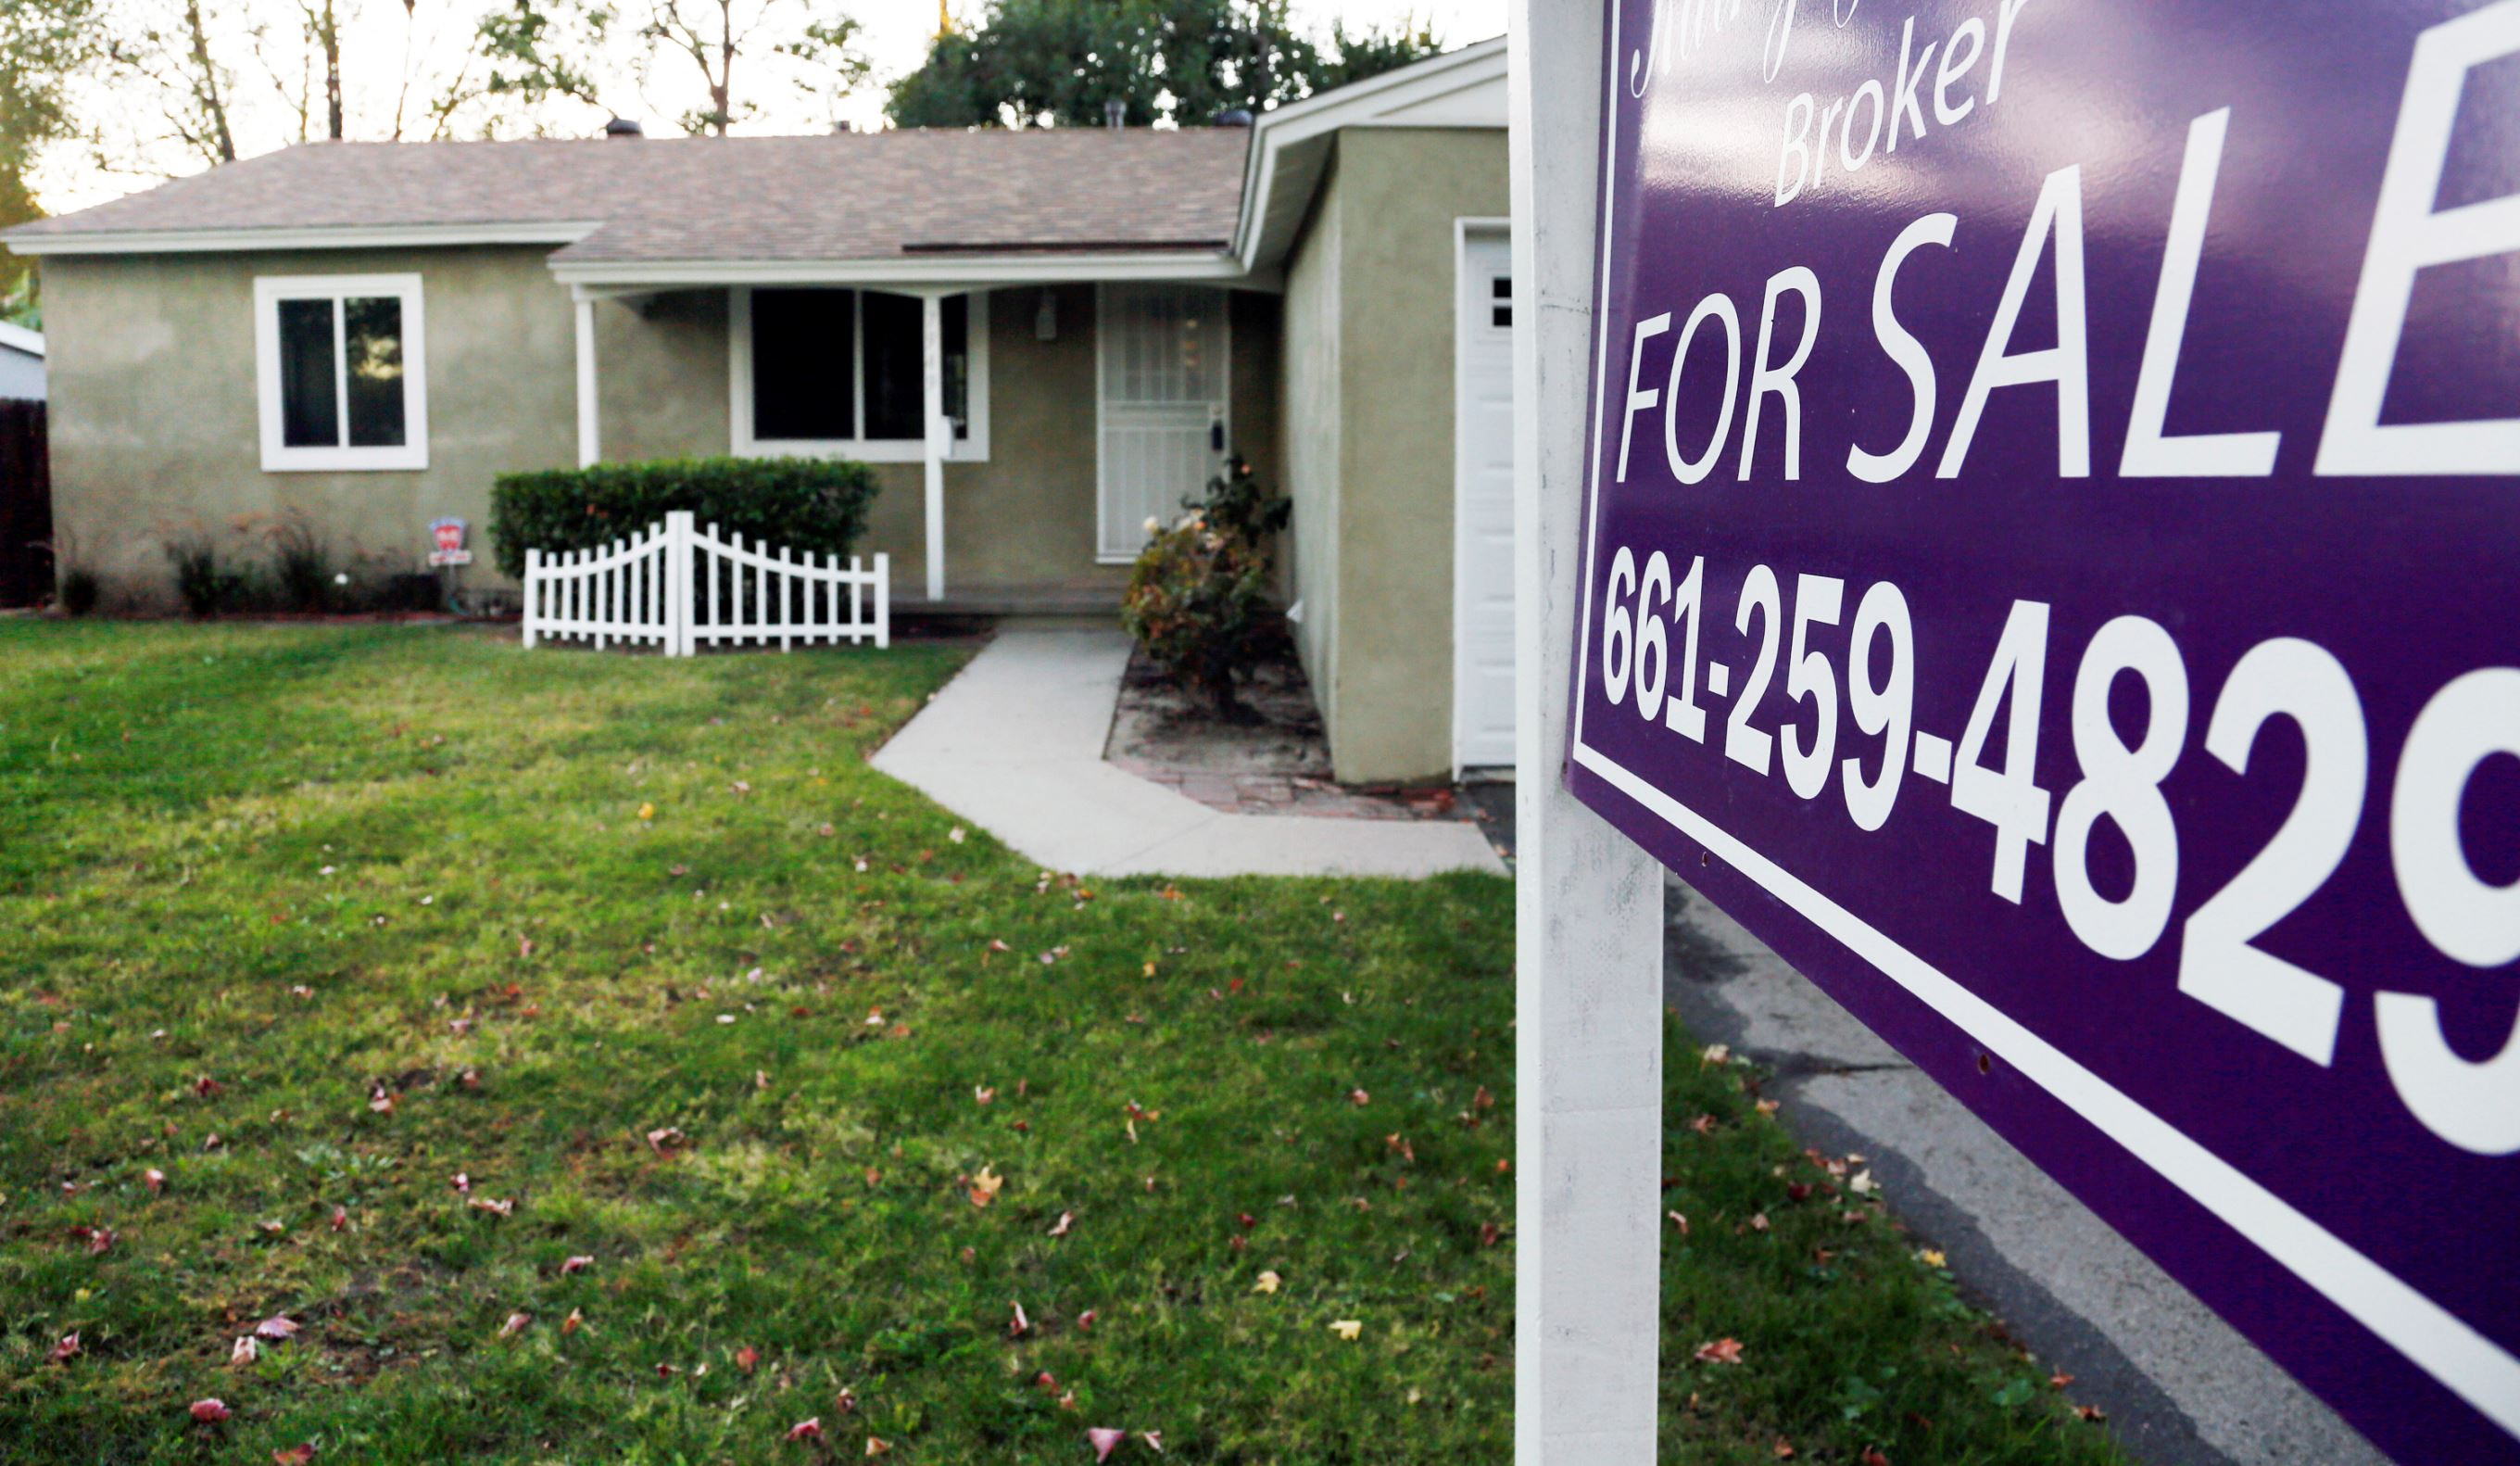 Mortgage payments paused or reduced for 3 million U.S. households, survey suggests